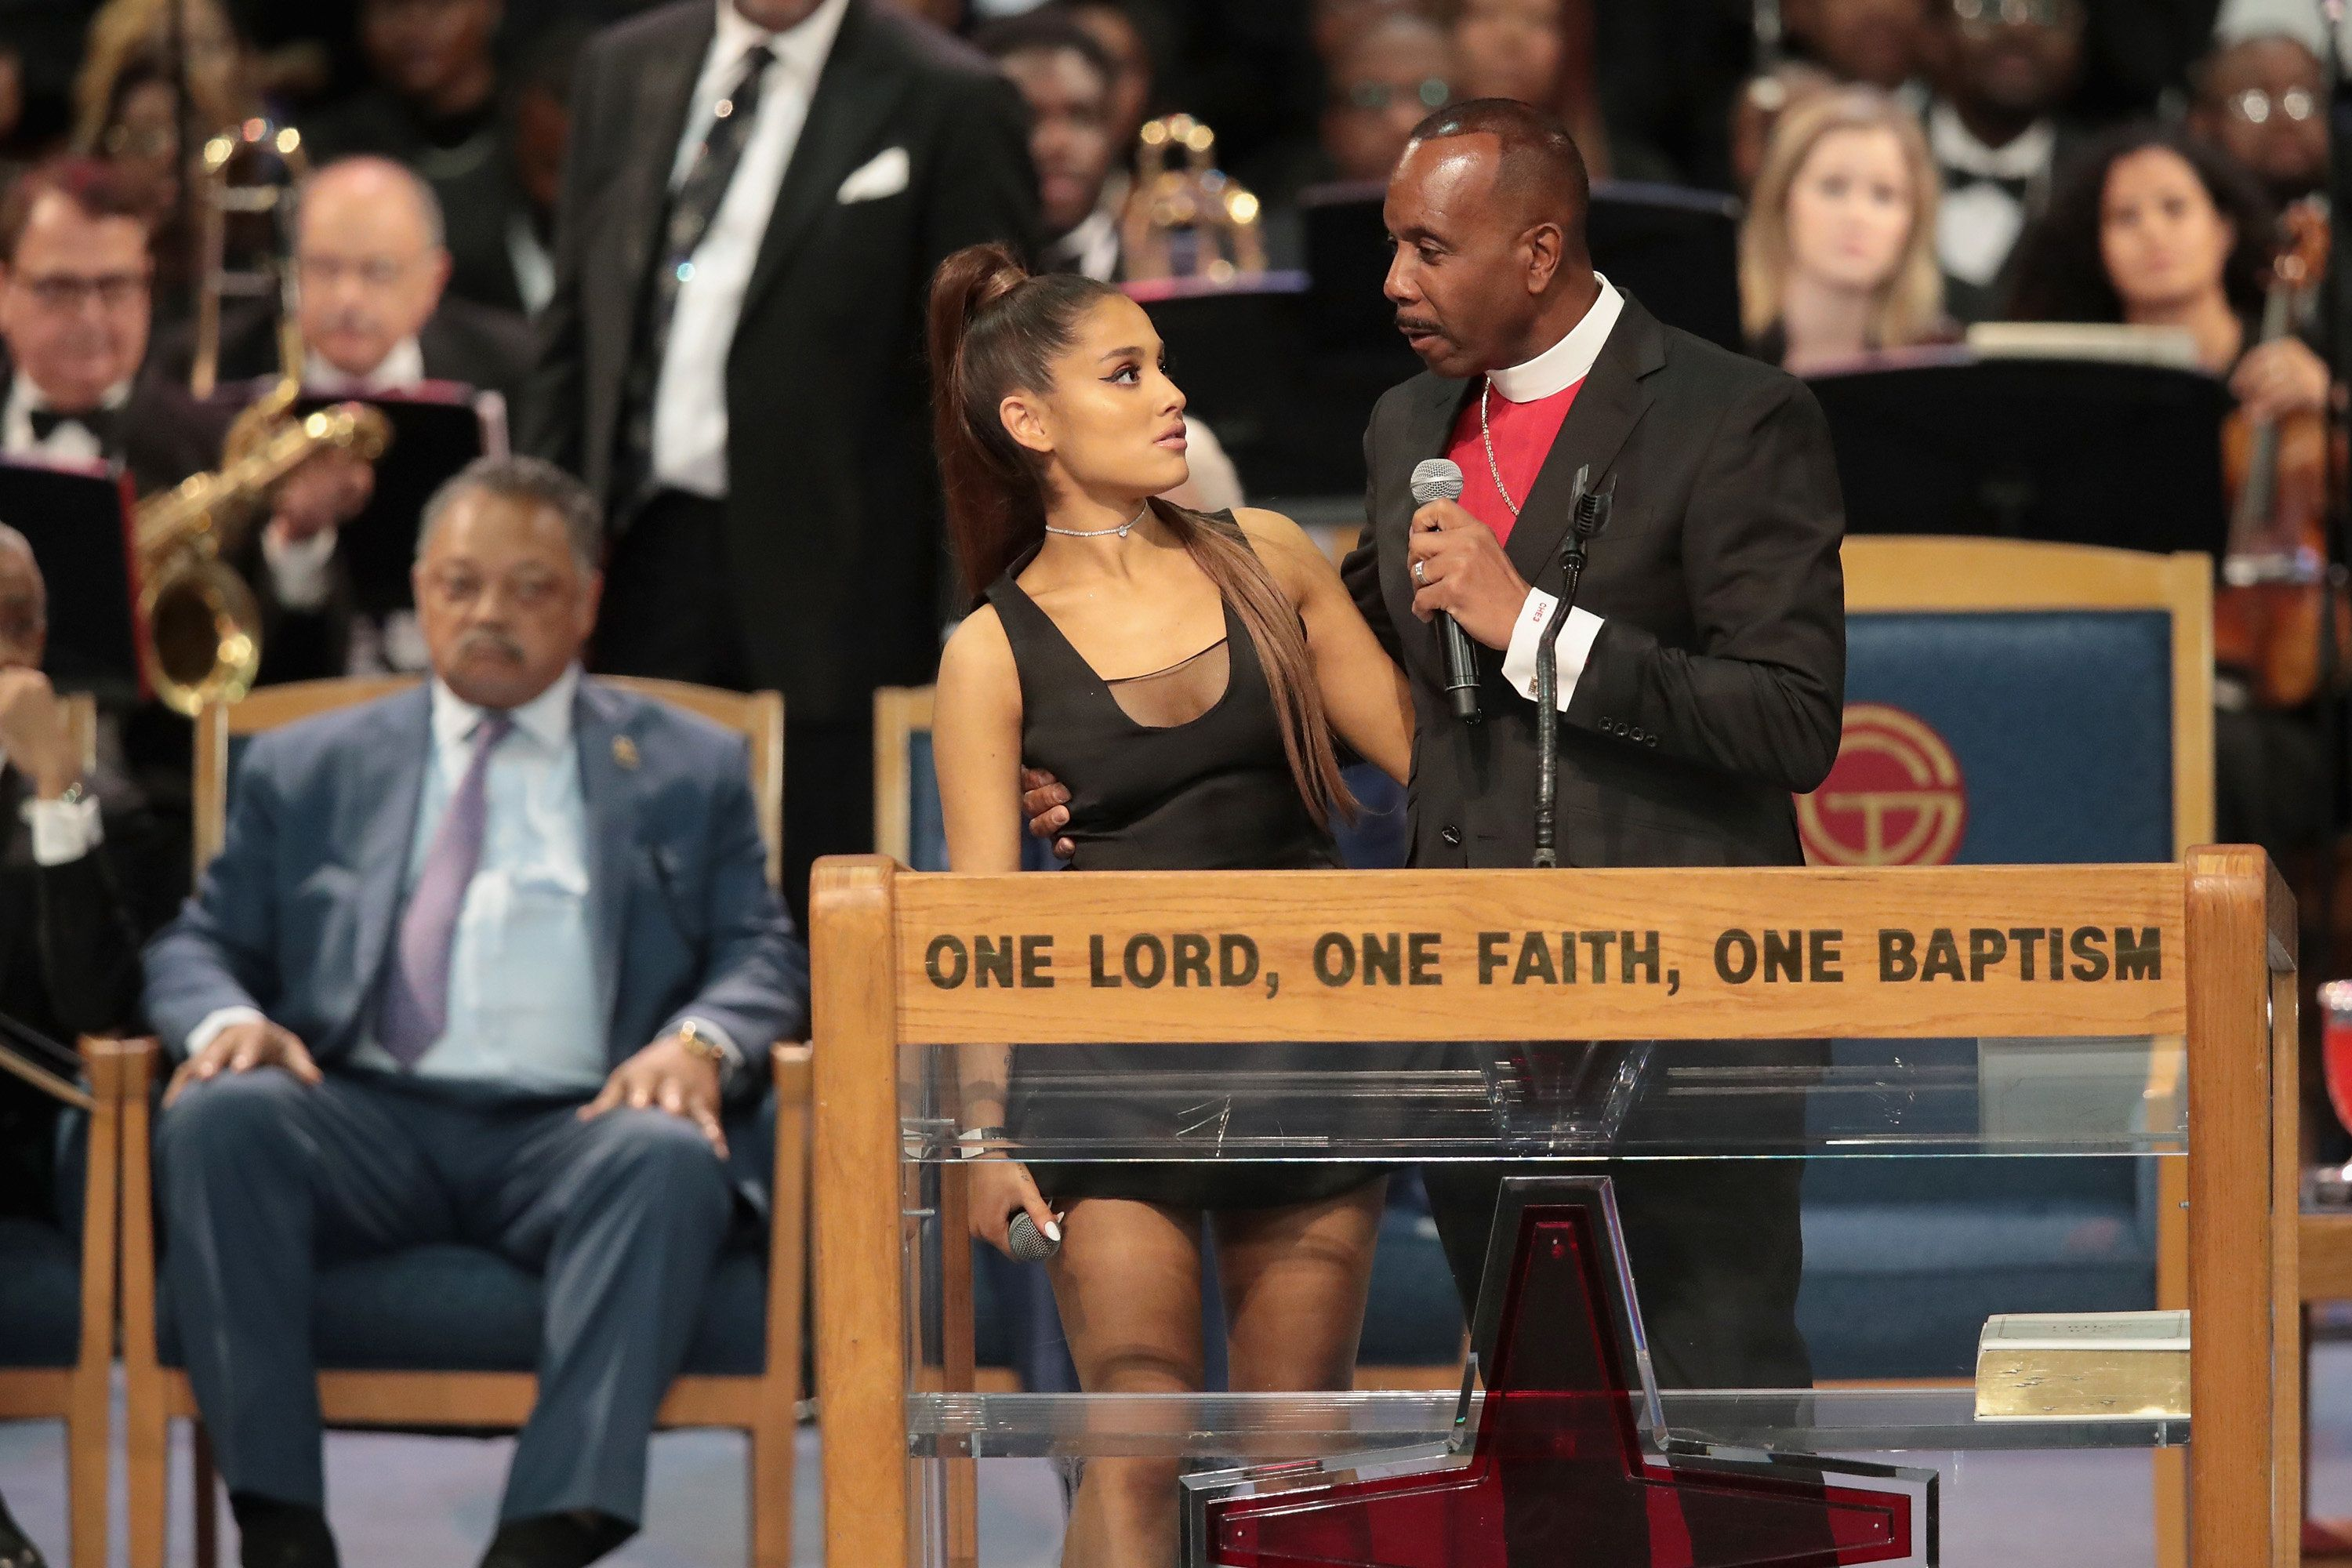 Ariana Grande Receives Apology From Bishop Accused Of Groping Her At Aretha Franklin